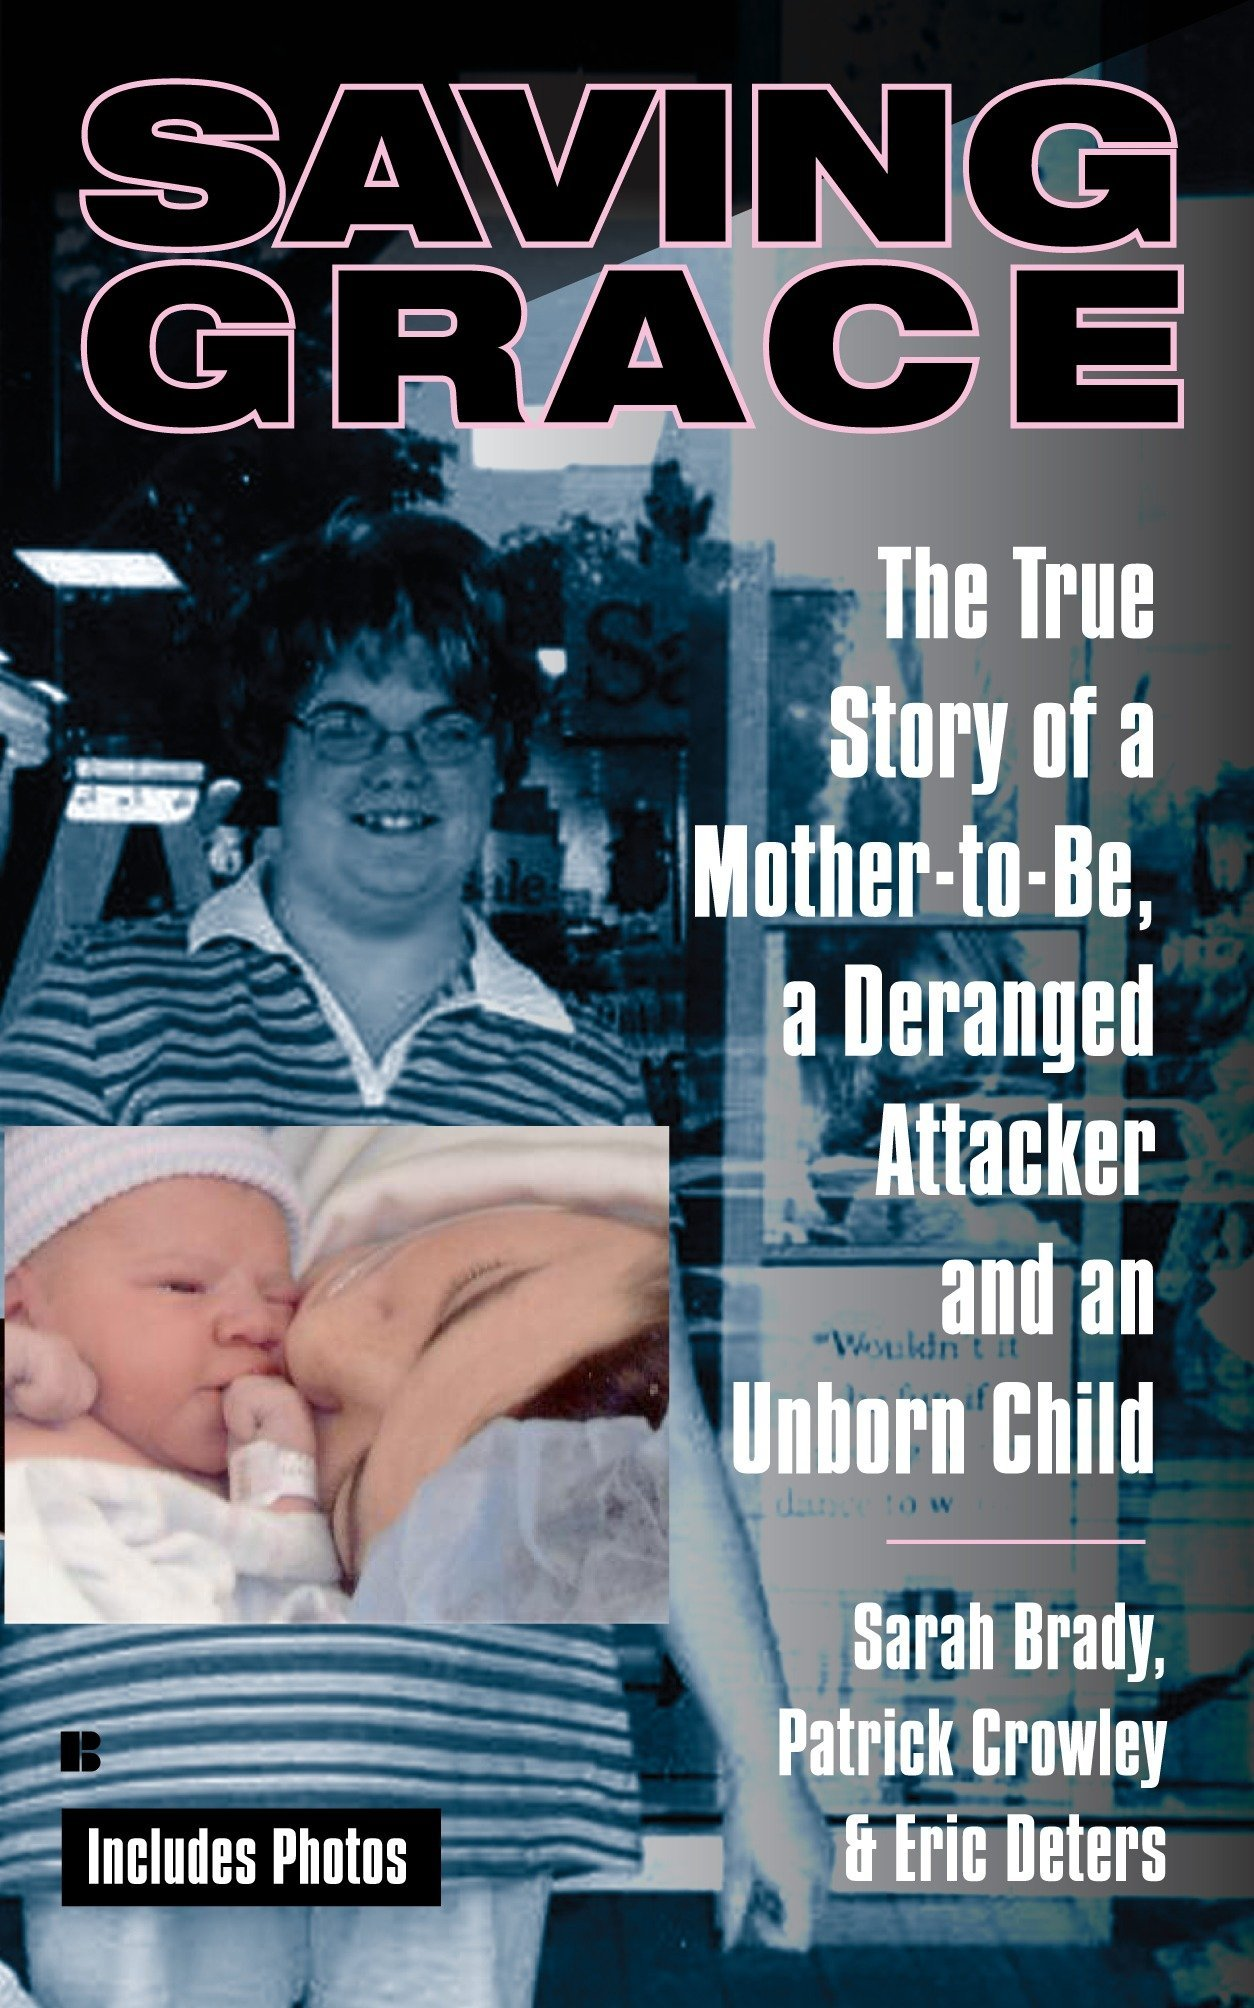 Saving Grace: The True Story of a Mother-to-Be, a Deranged Attacker, and an UnbornChild PDF